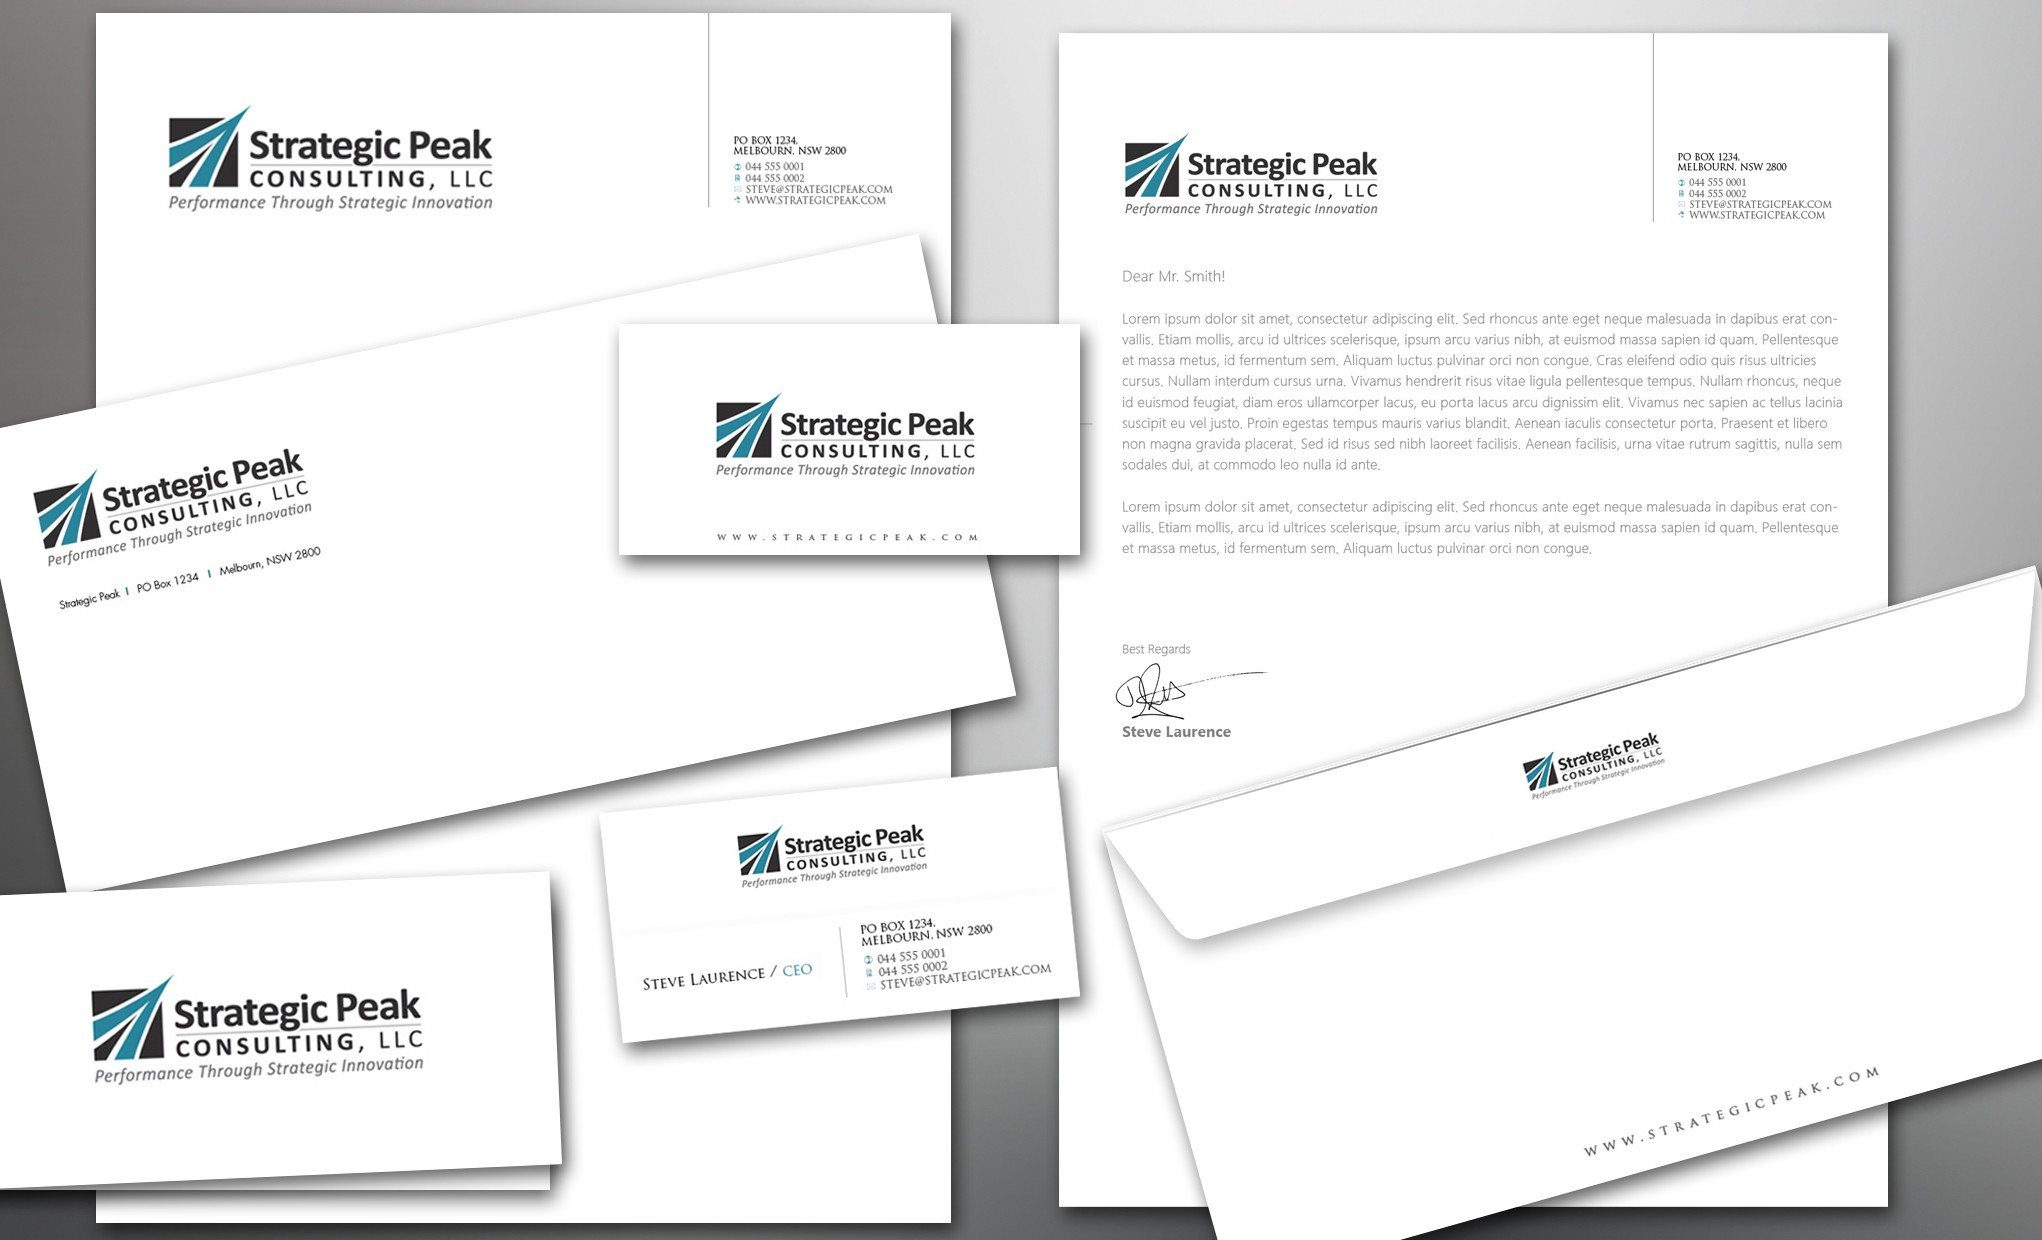 New stationery wanted for Strategic Peak Consulting, LLC.  Logo attached for idea generation